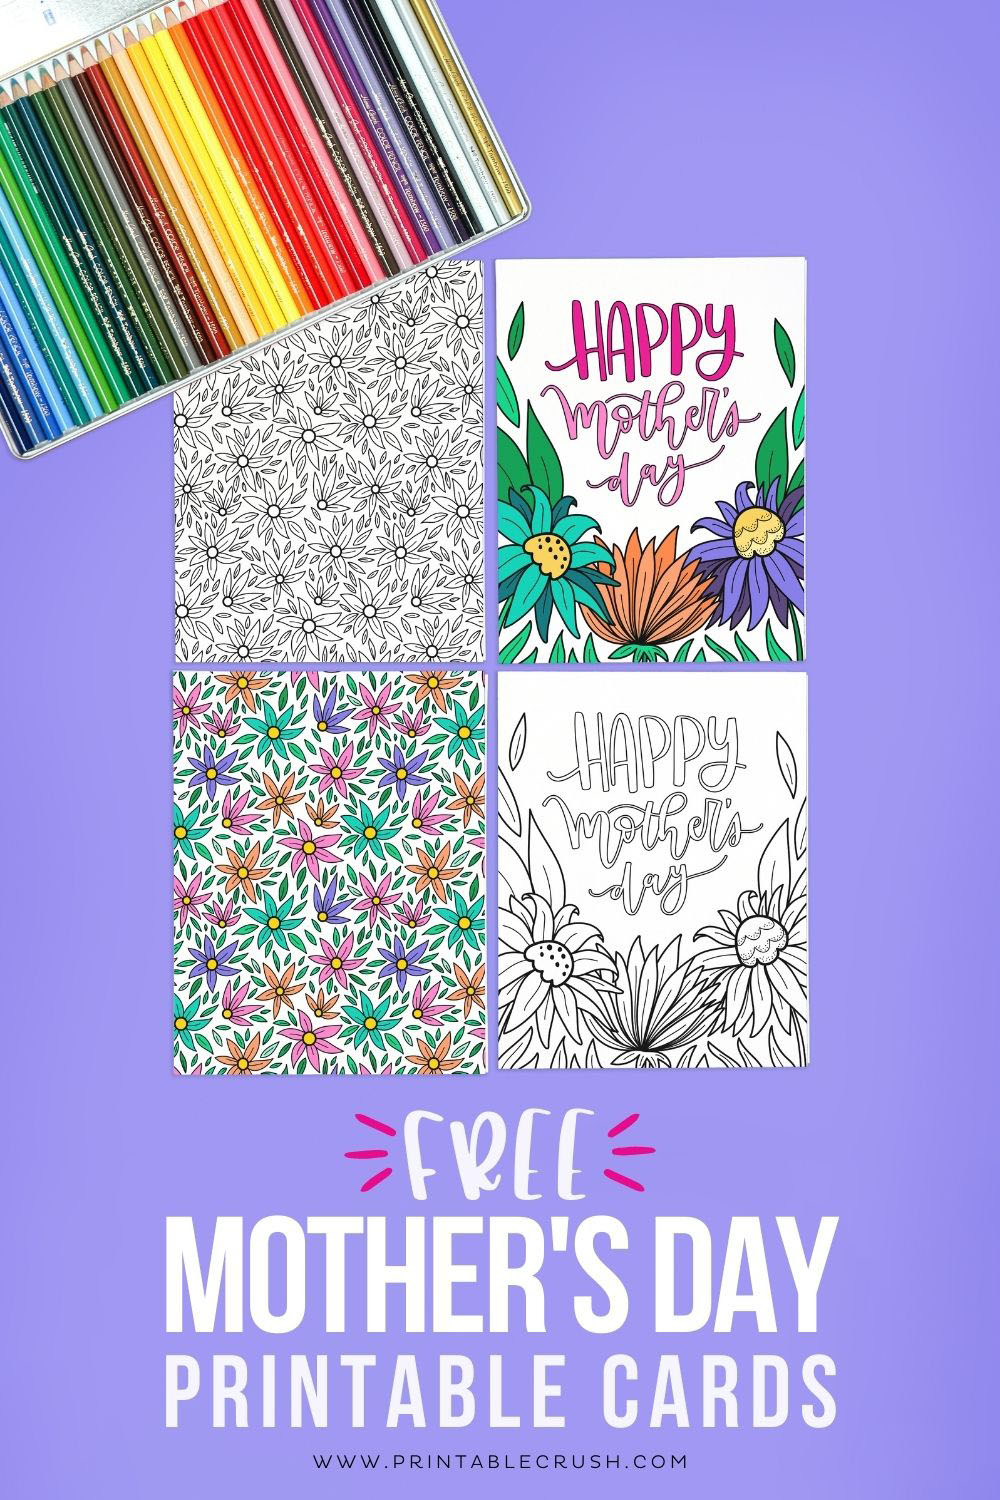 Free Mother's Day Printable Coloring Cards - Free Coloring Page for Mother's Day - Mother's Day Cards - Printable Crush via @printablecrush